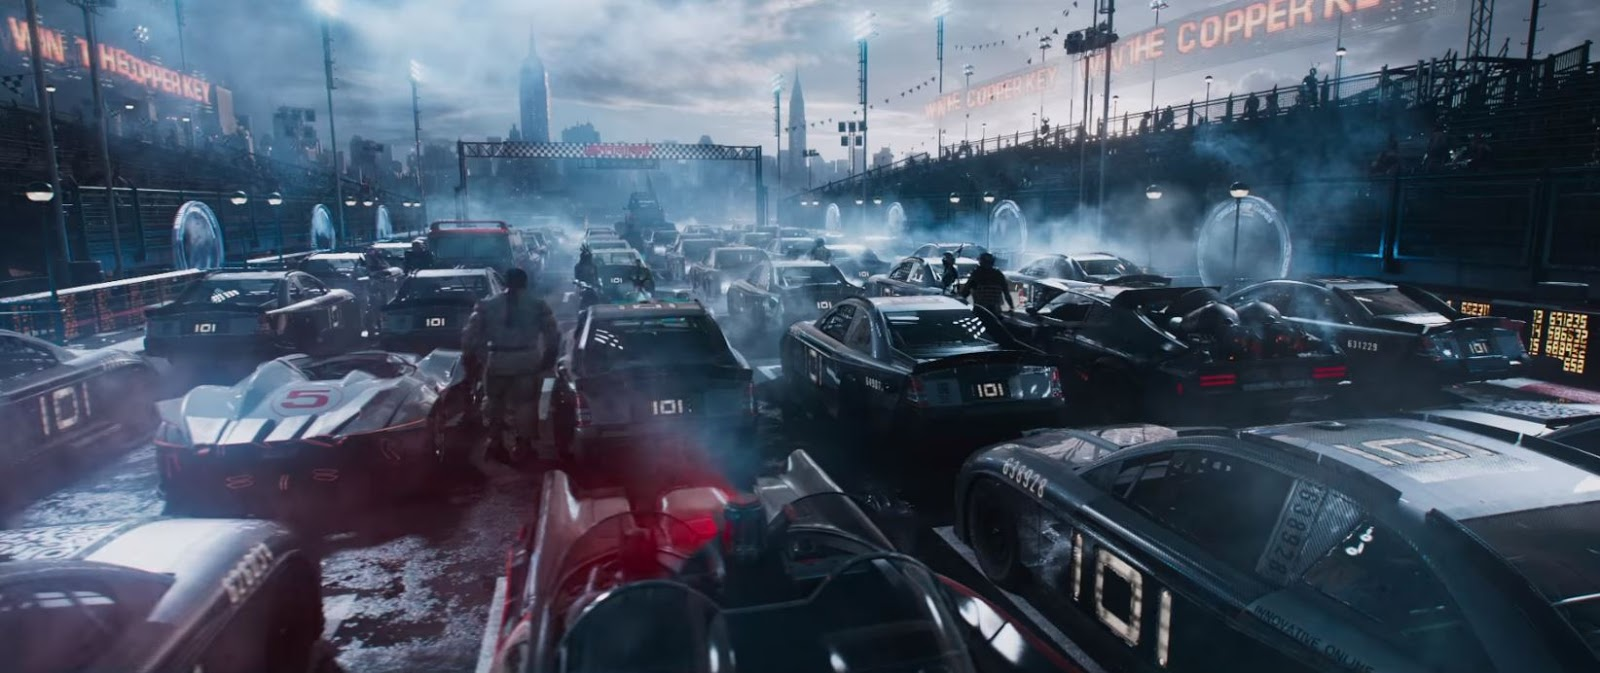 New Scene From Ready Player One Car Race With Mad Maxs Falcon The Adam West Era Batmobile Bigfoot And A Team Van